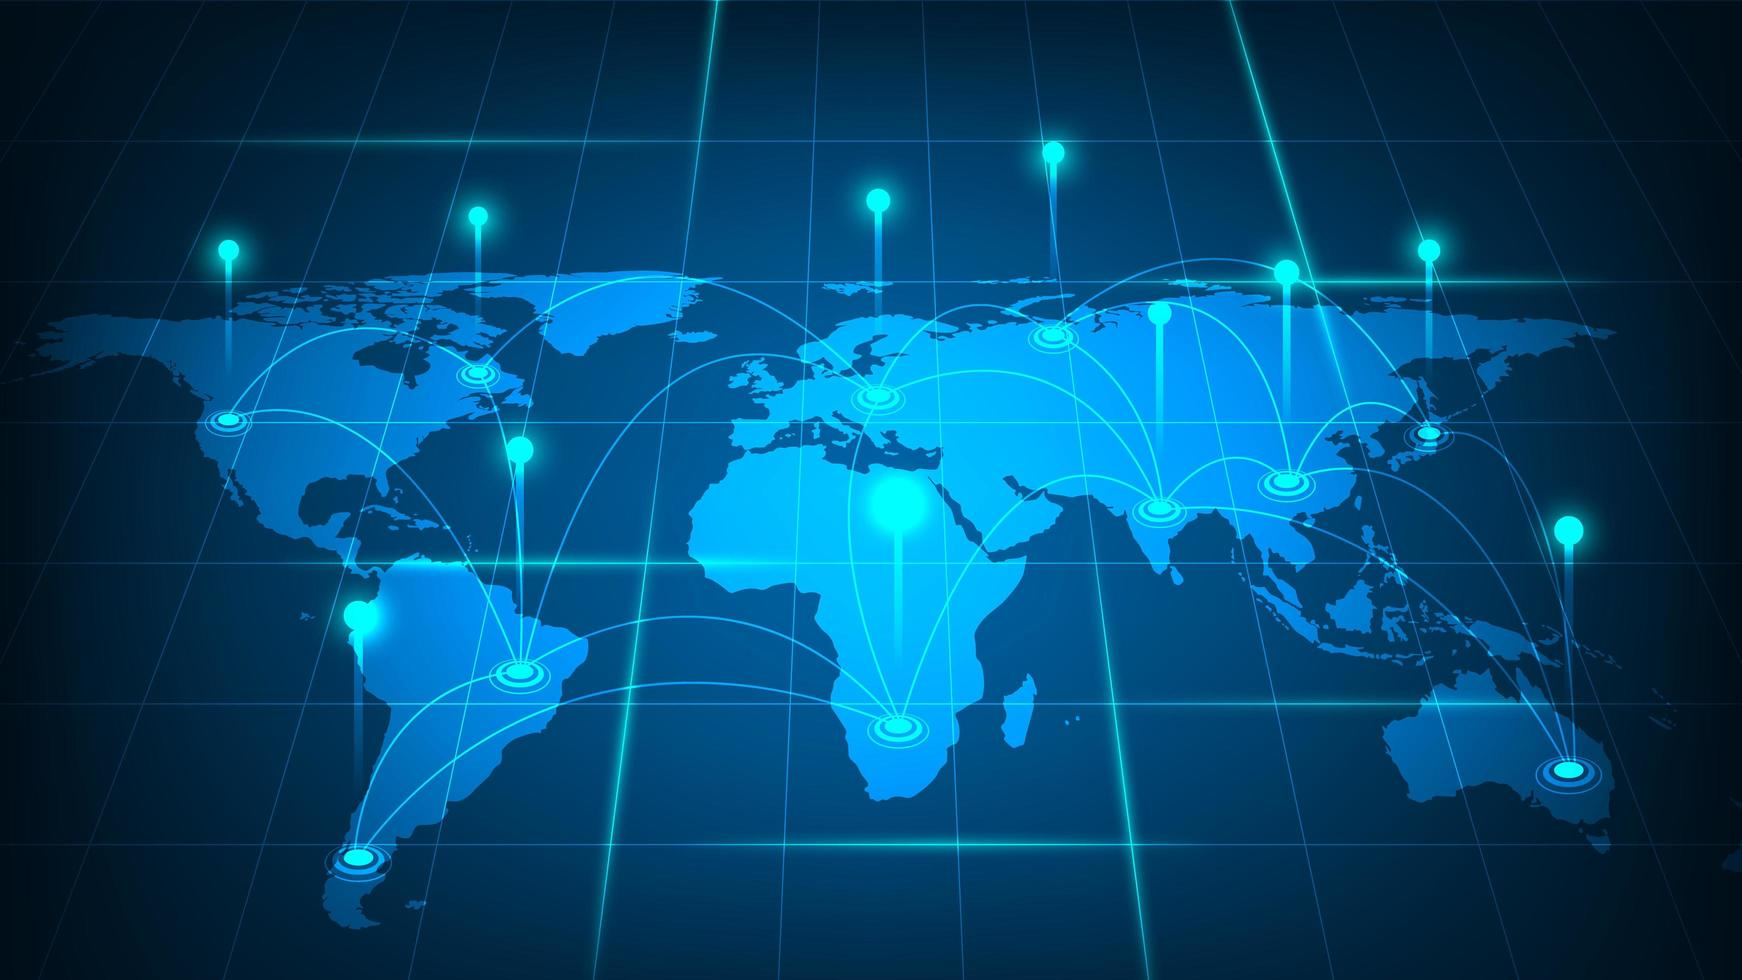 Global network connection concept vector